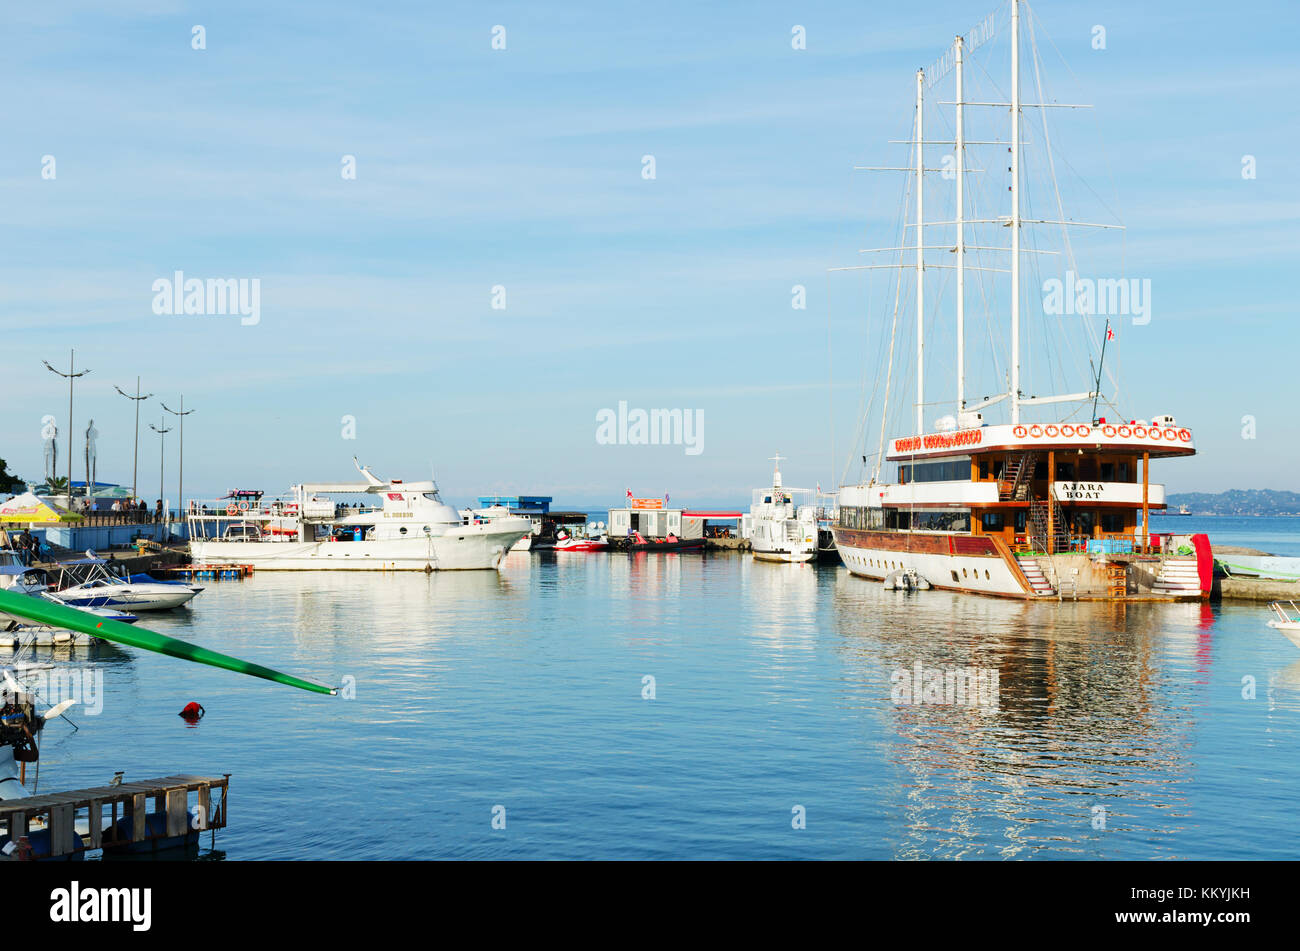 Batumi, Georgia, 11-04-2017: Boats, yachts and ships parked in the port. - Stock Image